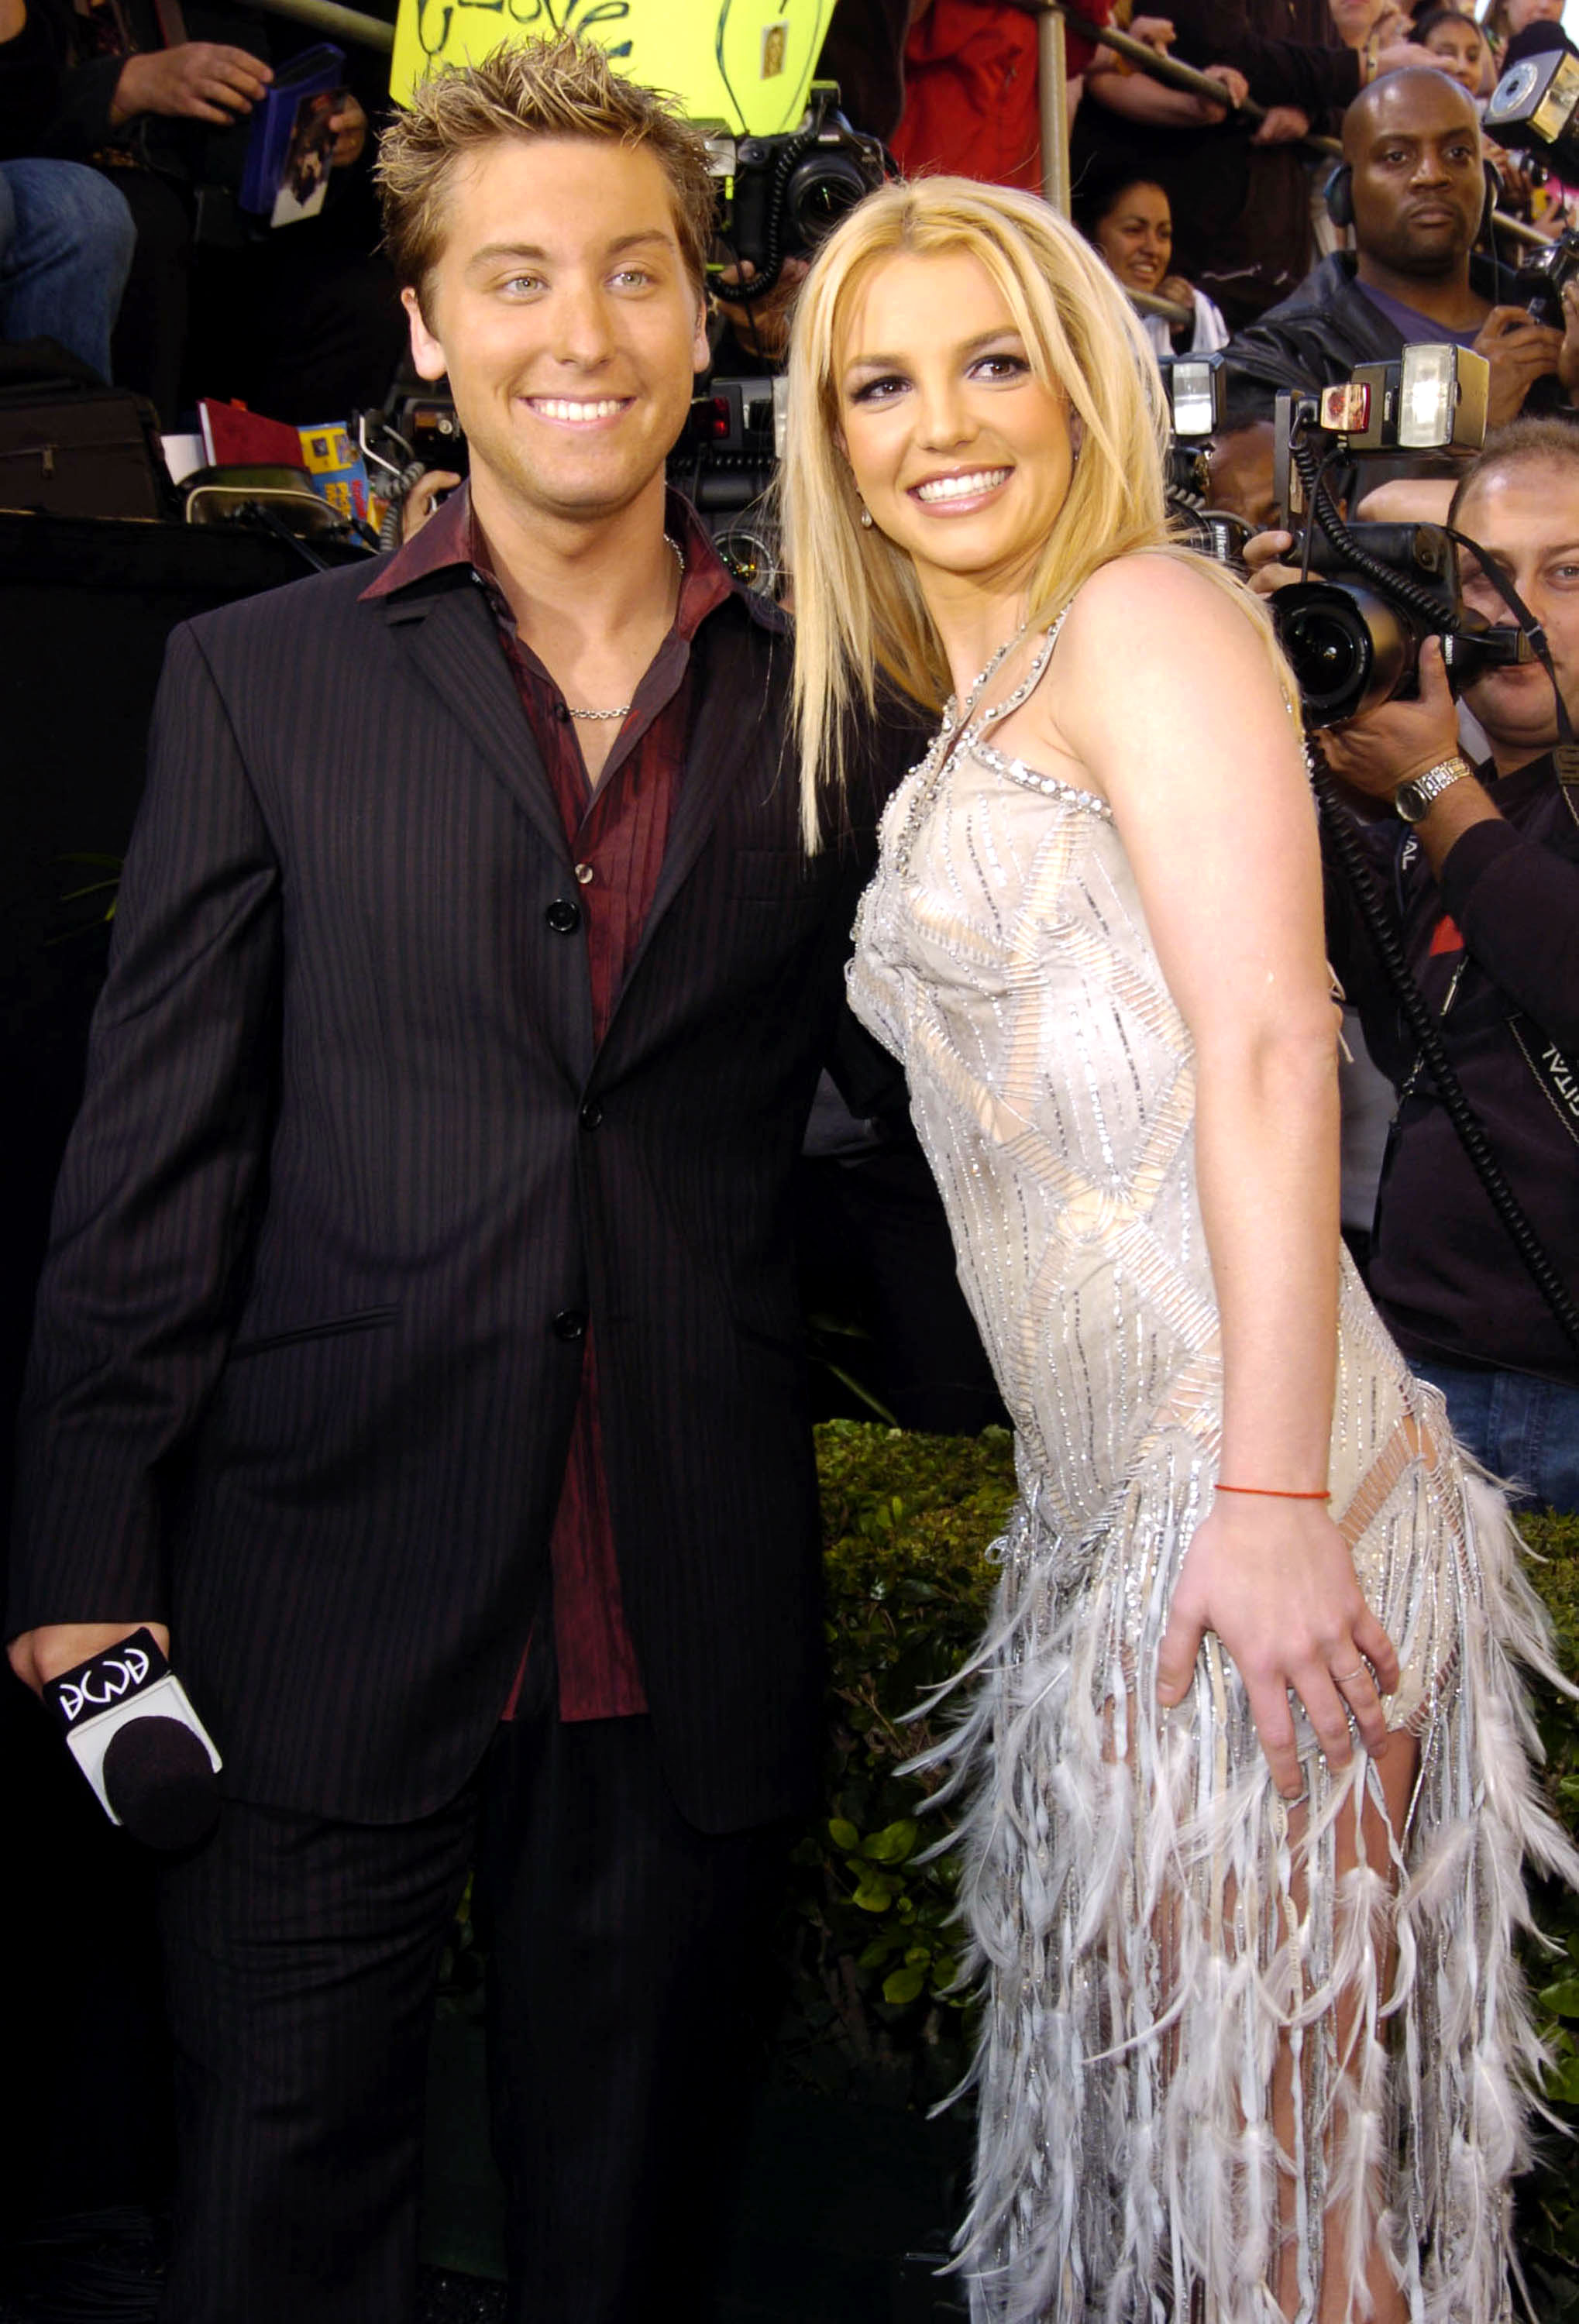 Lance Bass Reveals He Came Out to Britney Spears on the Night of Her Quickie Las Vegas Wedding